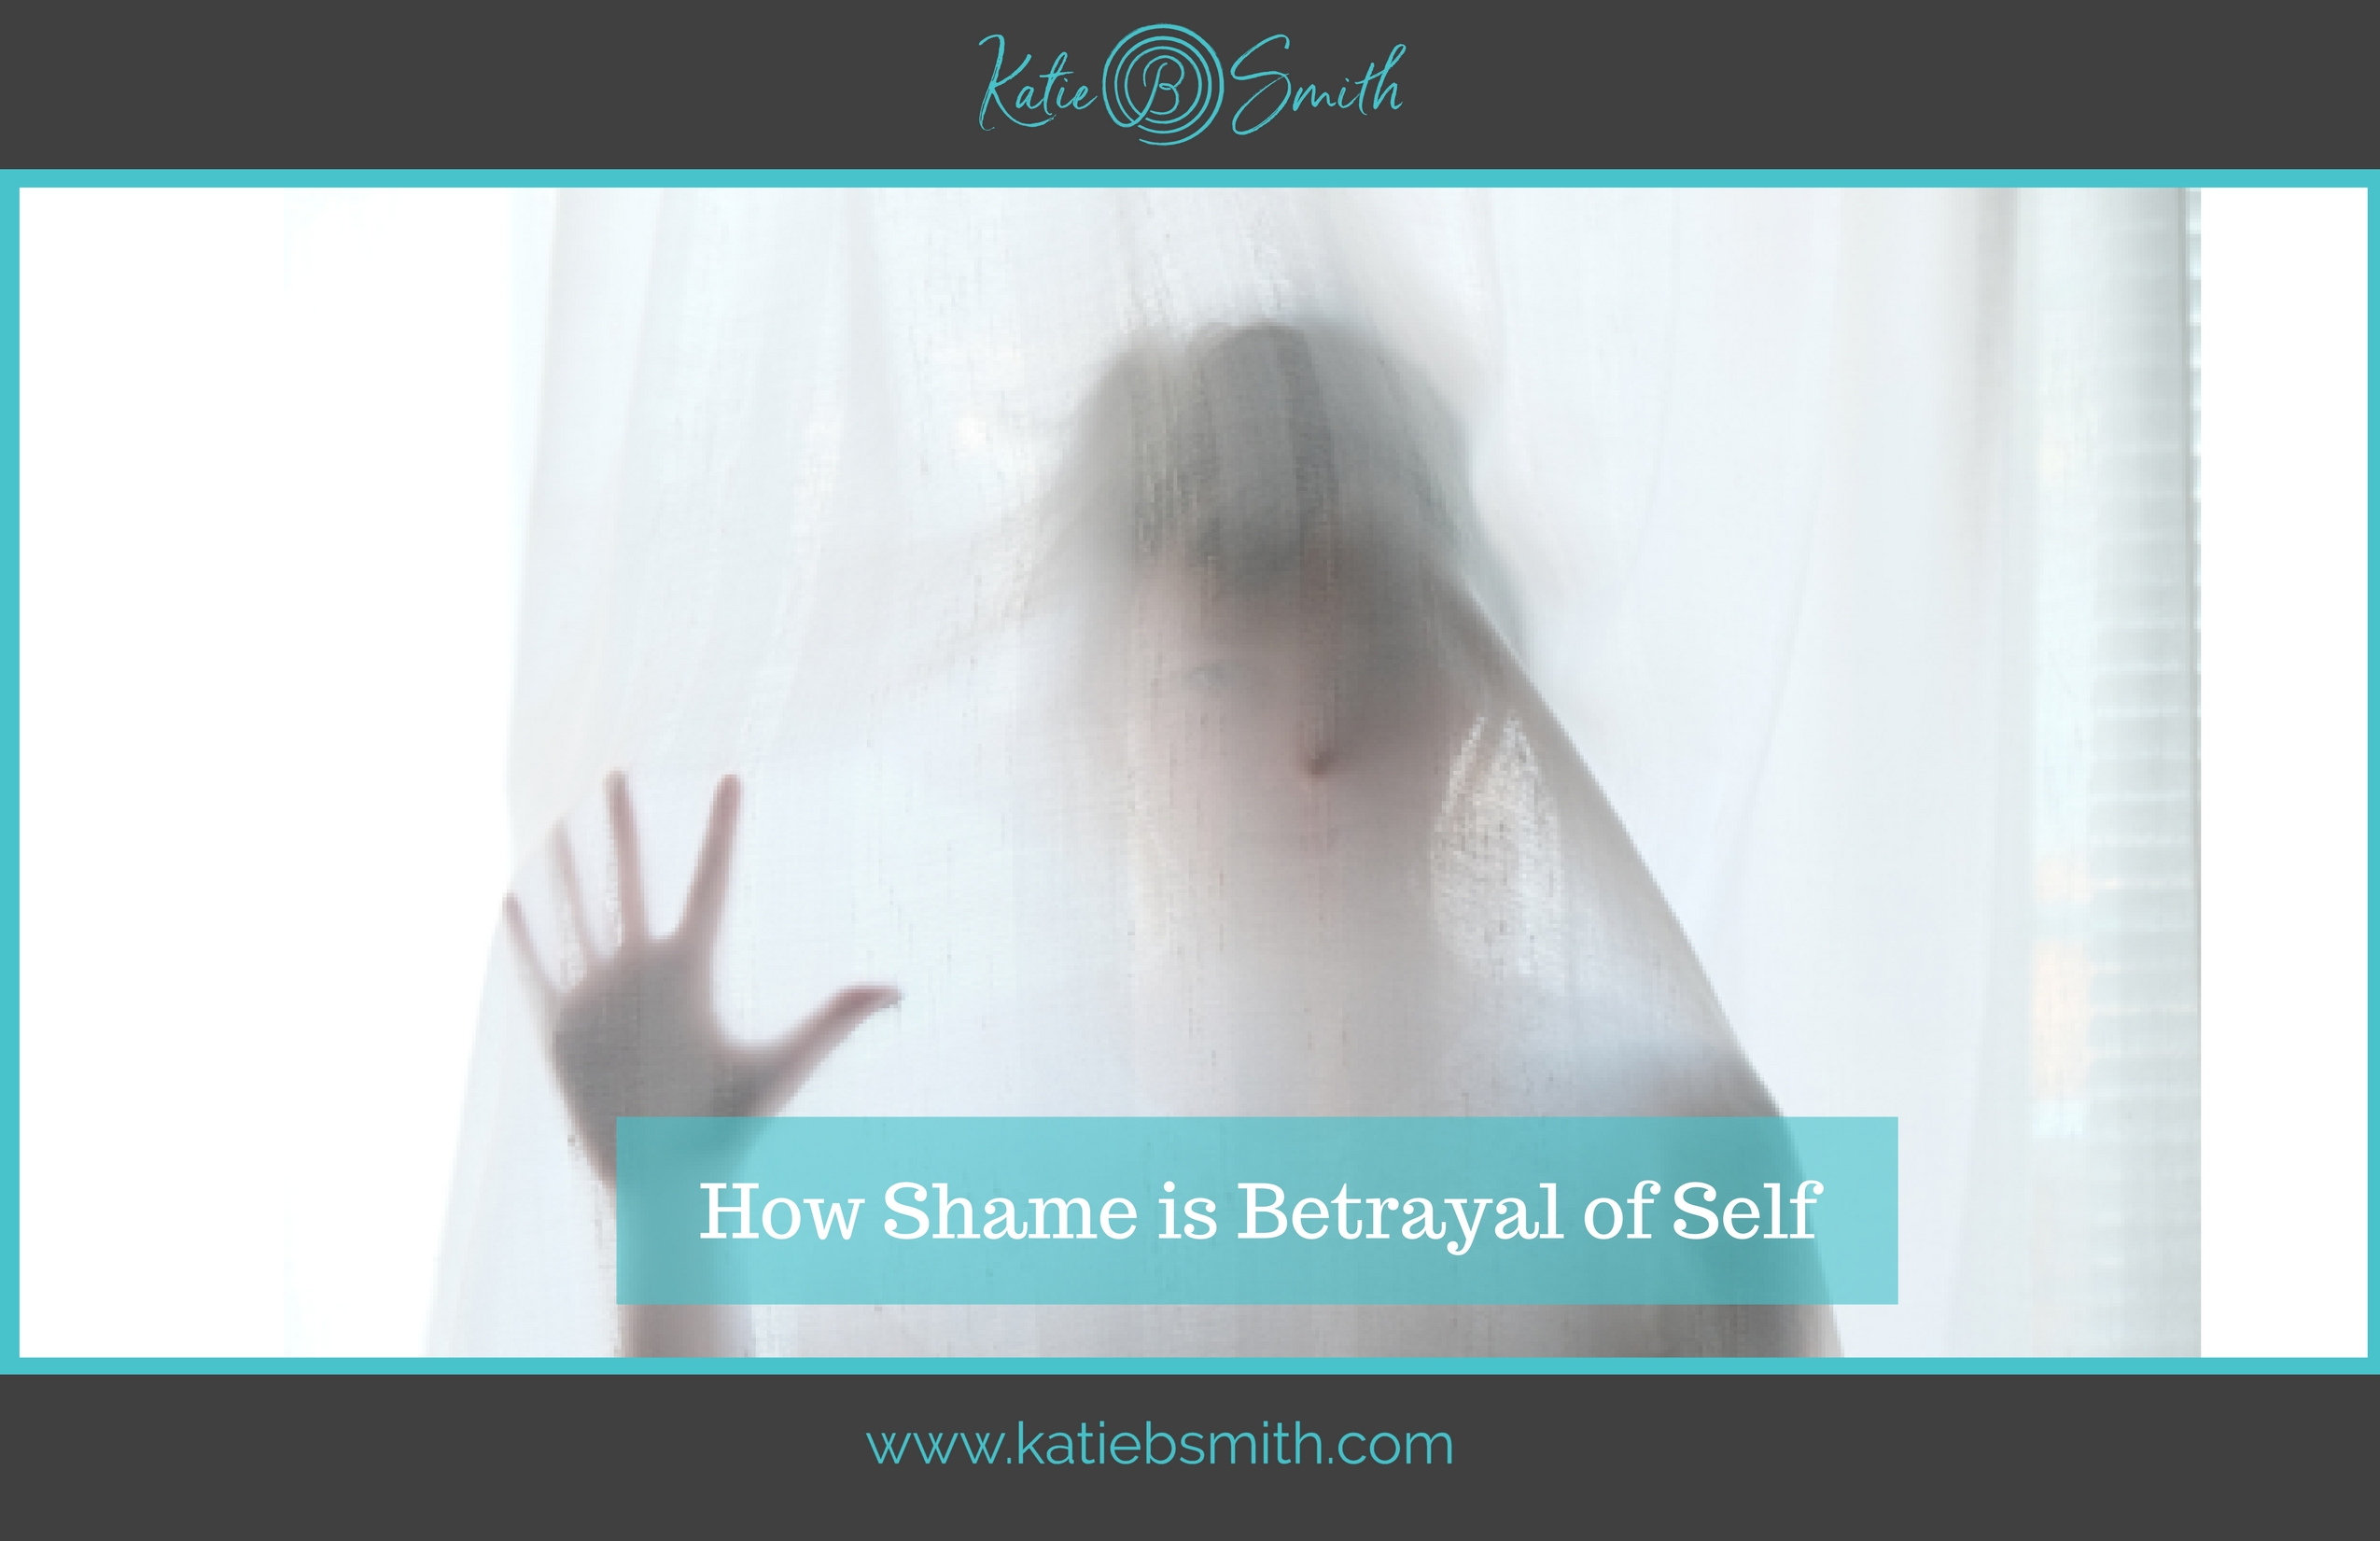 How Shame is Betrayal of Self KBS